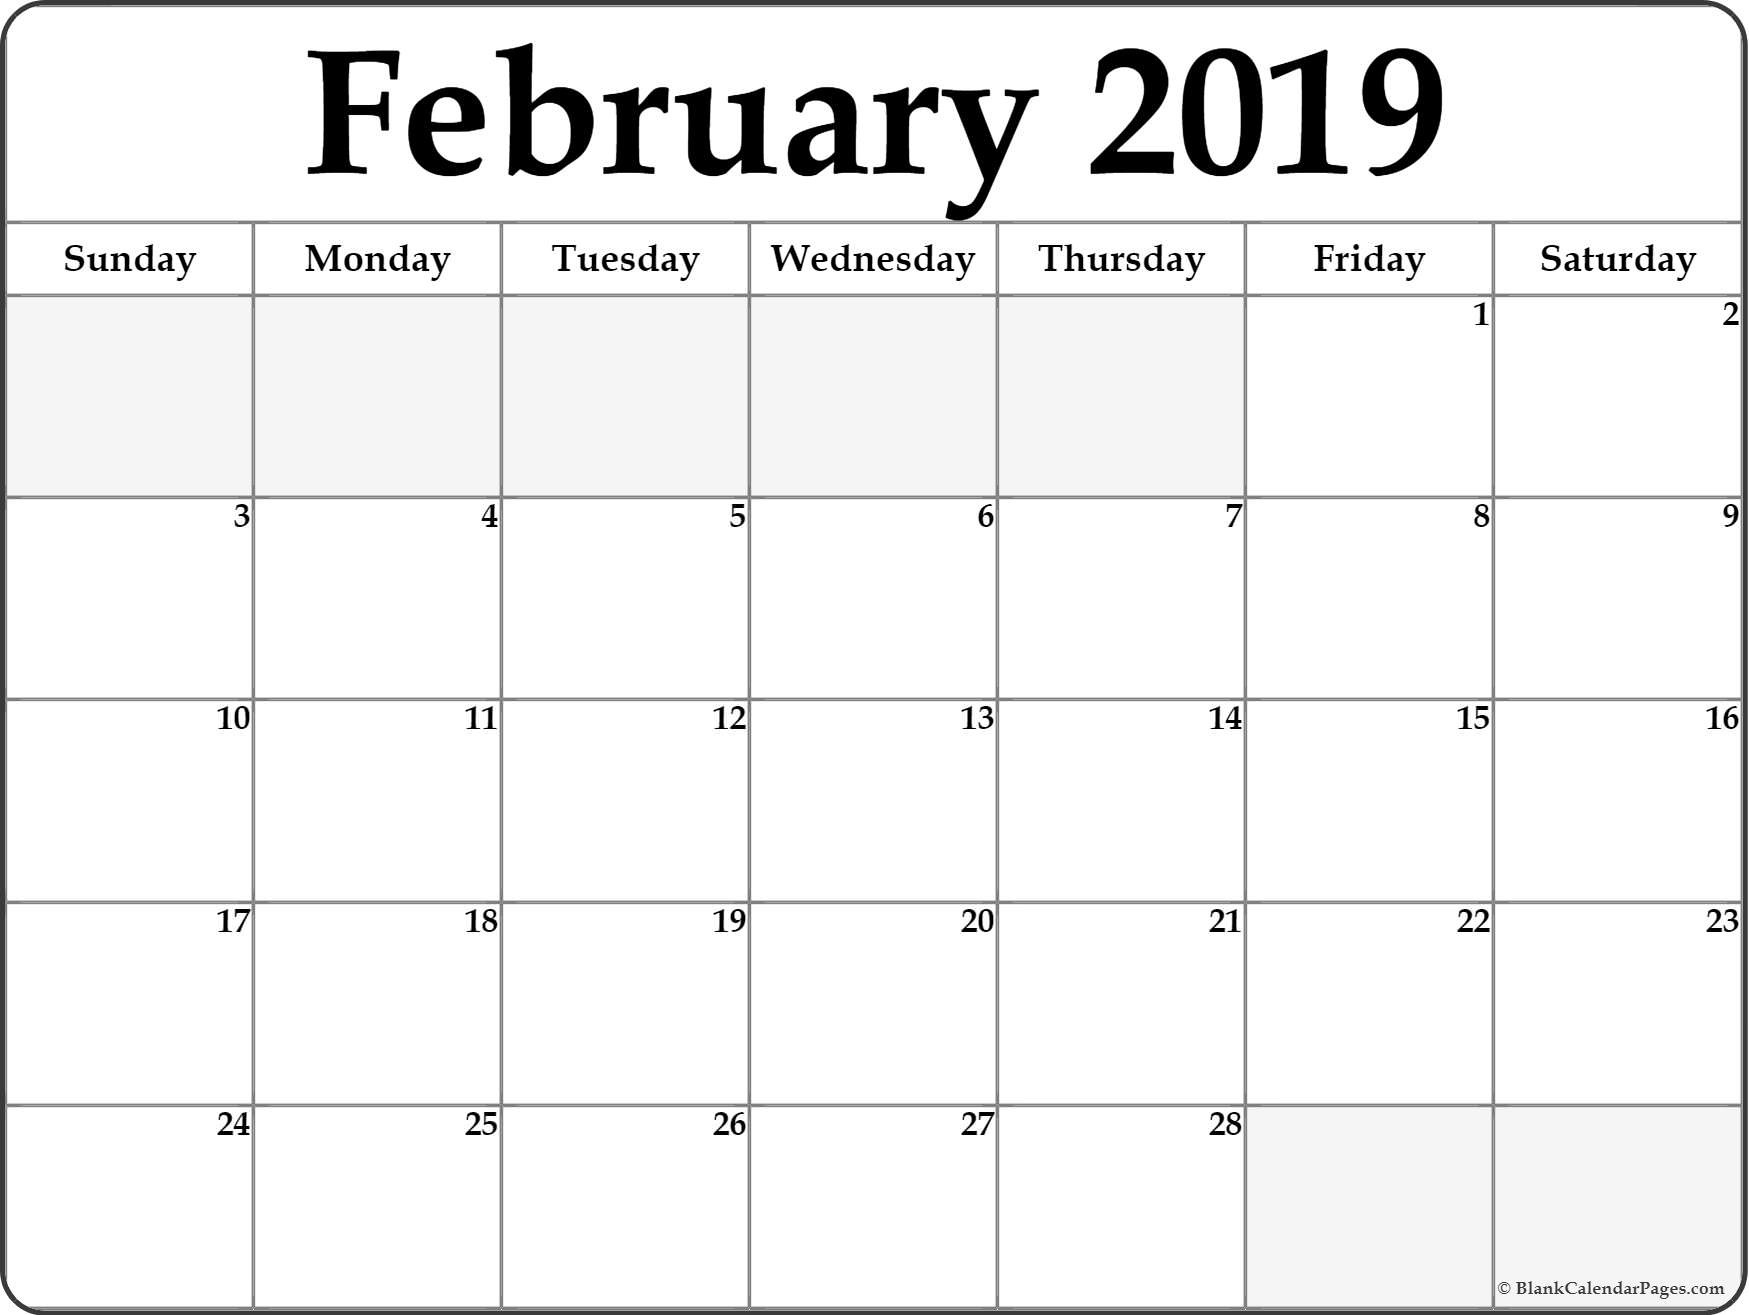 Calendar February 2019 Pdf - Free Printable Calendar, Templates And